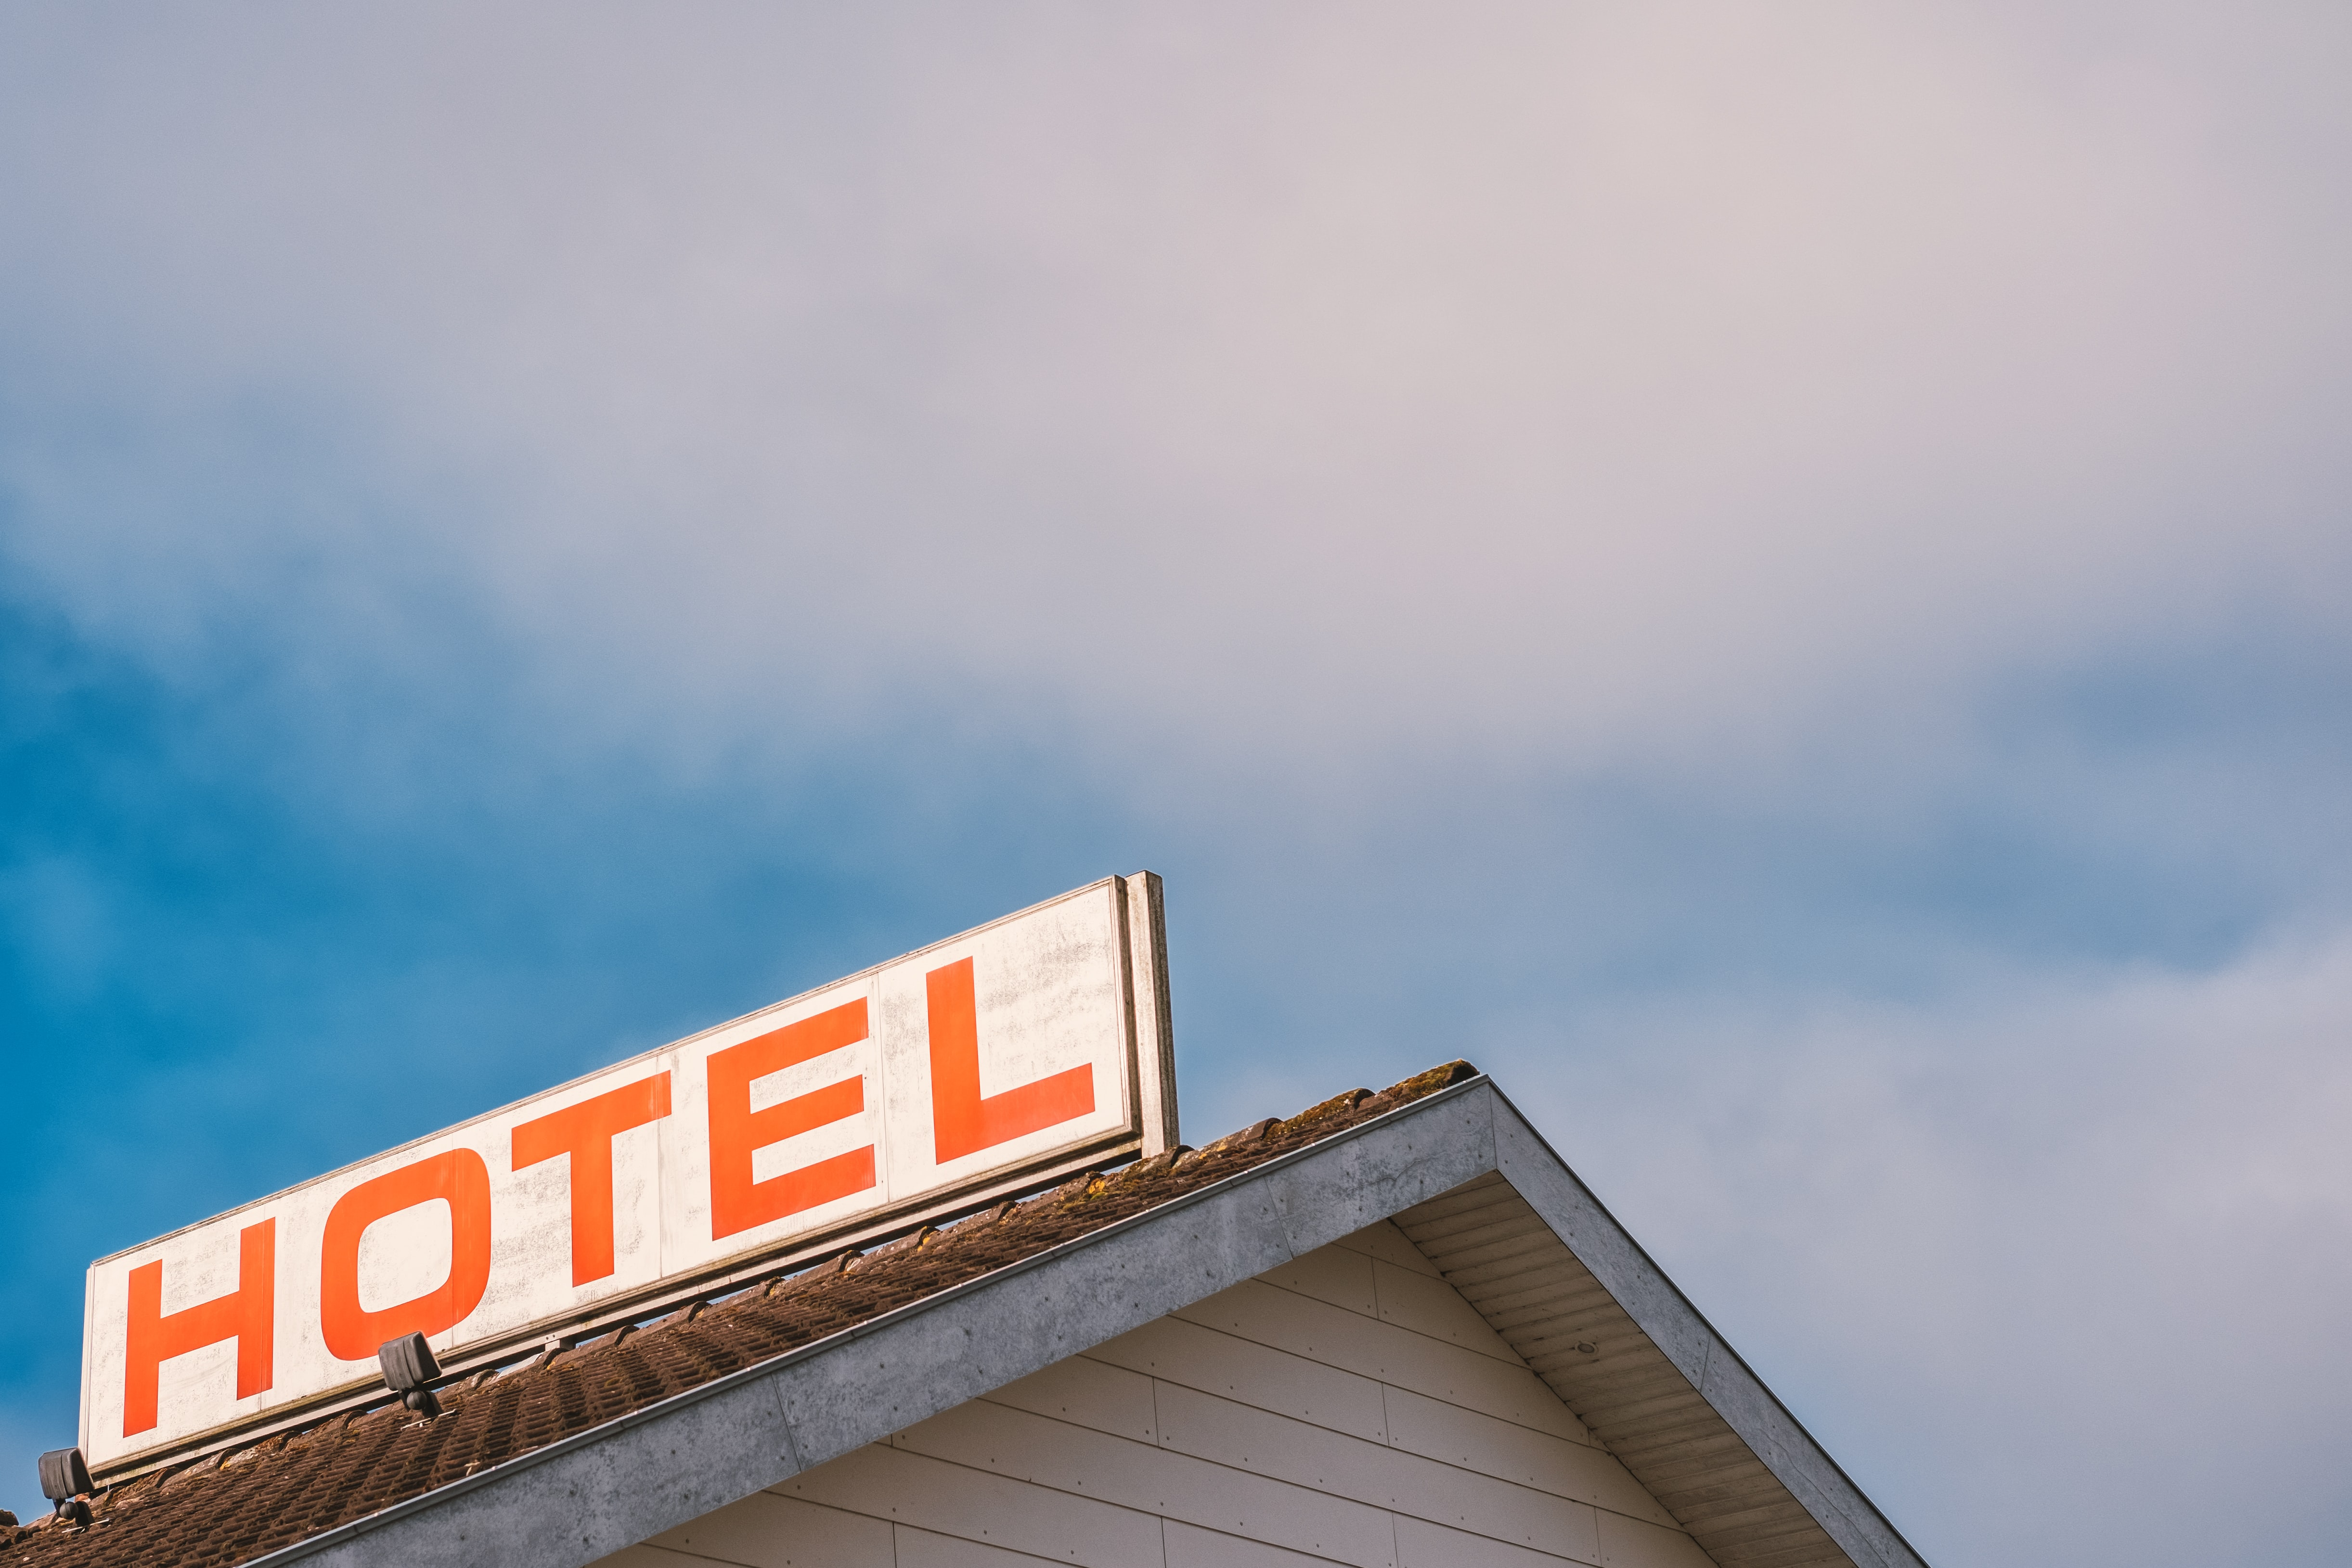 Hotel signboard on roof